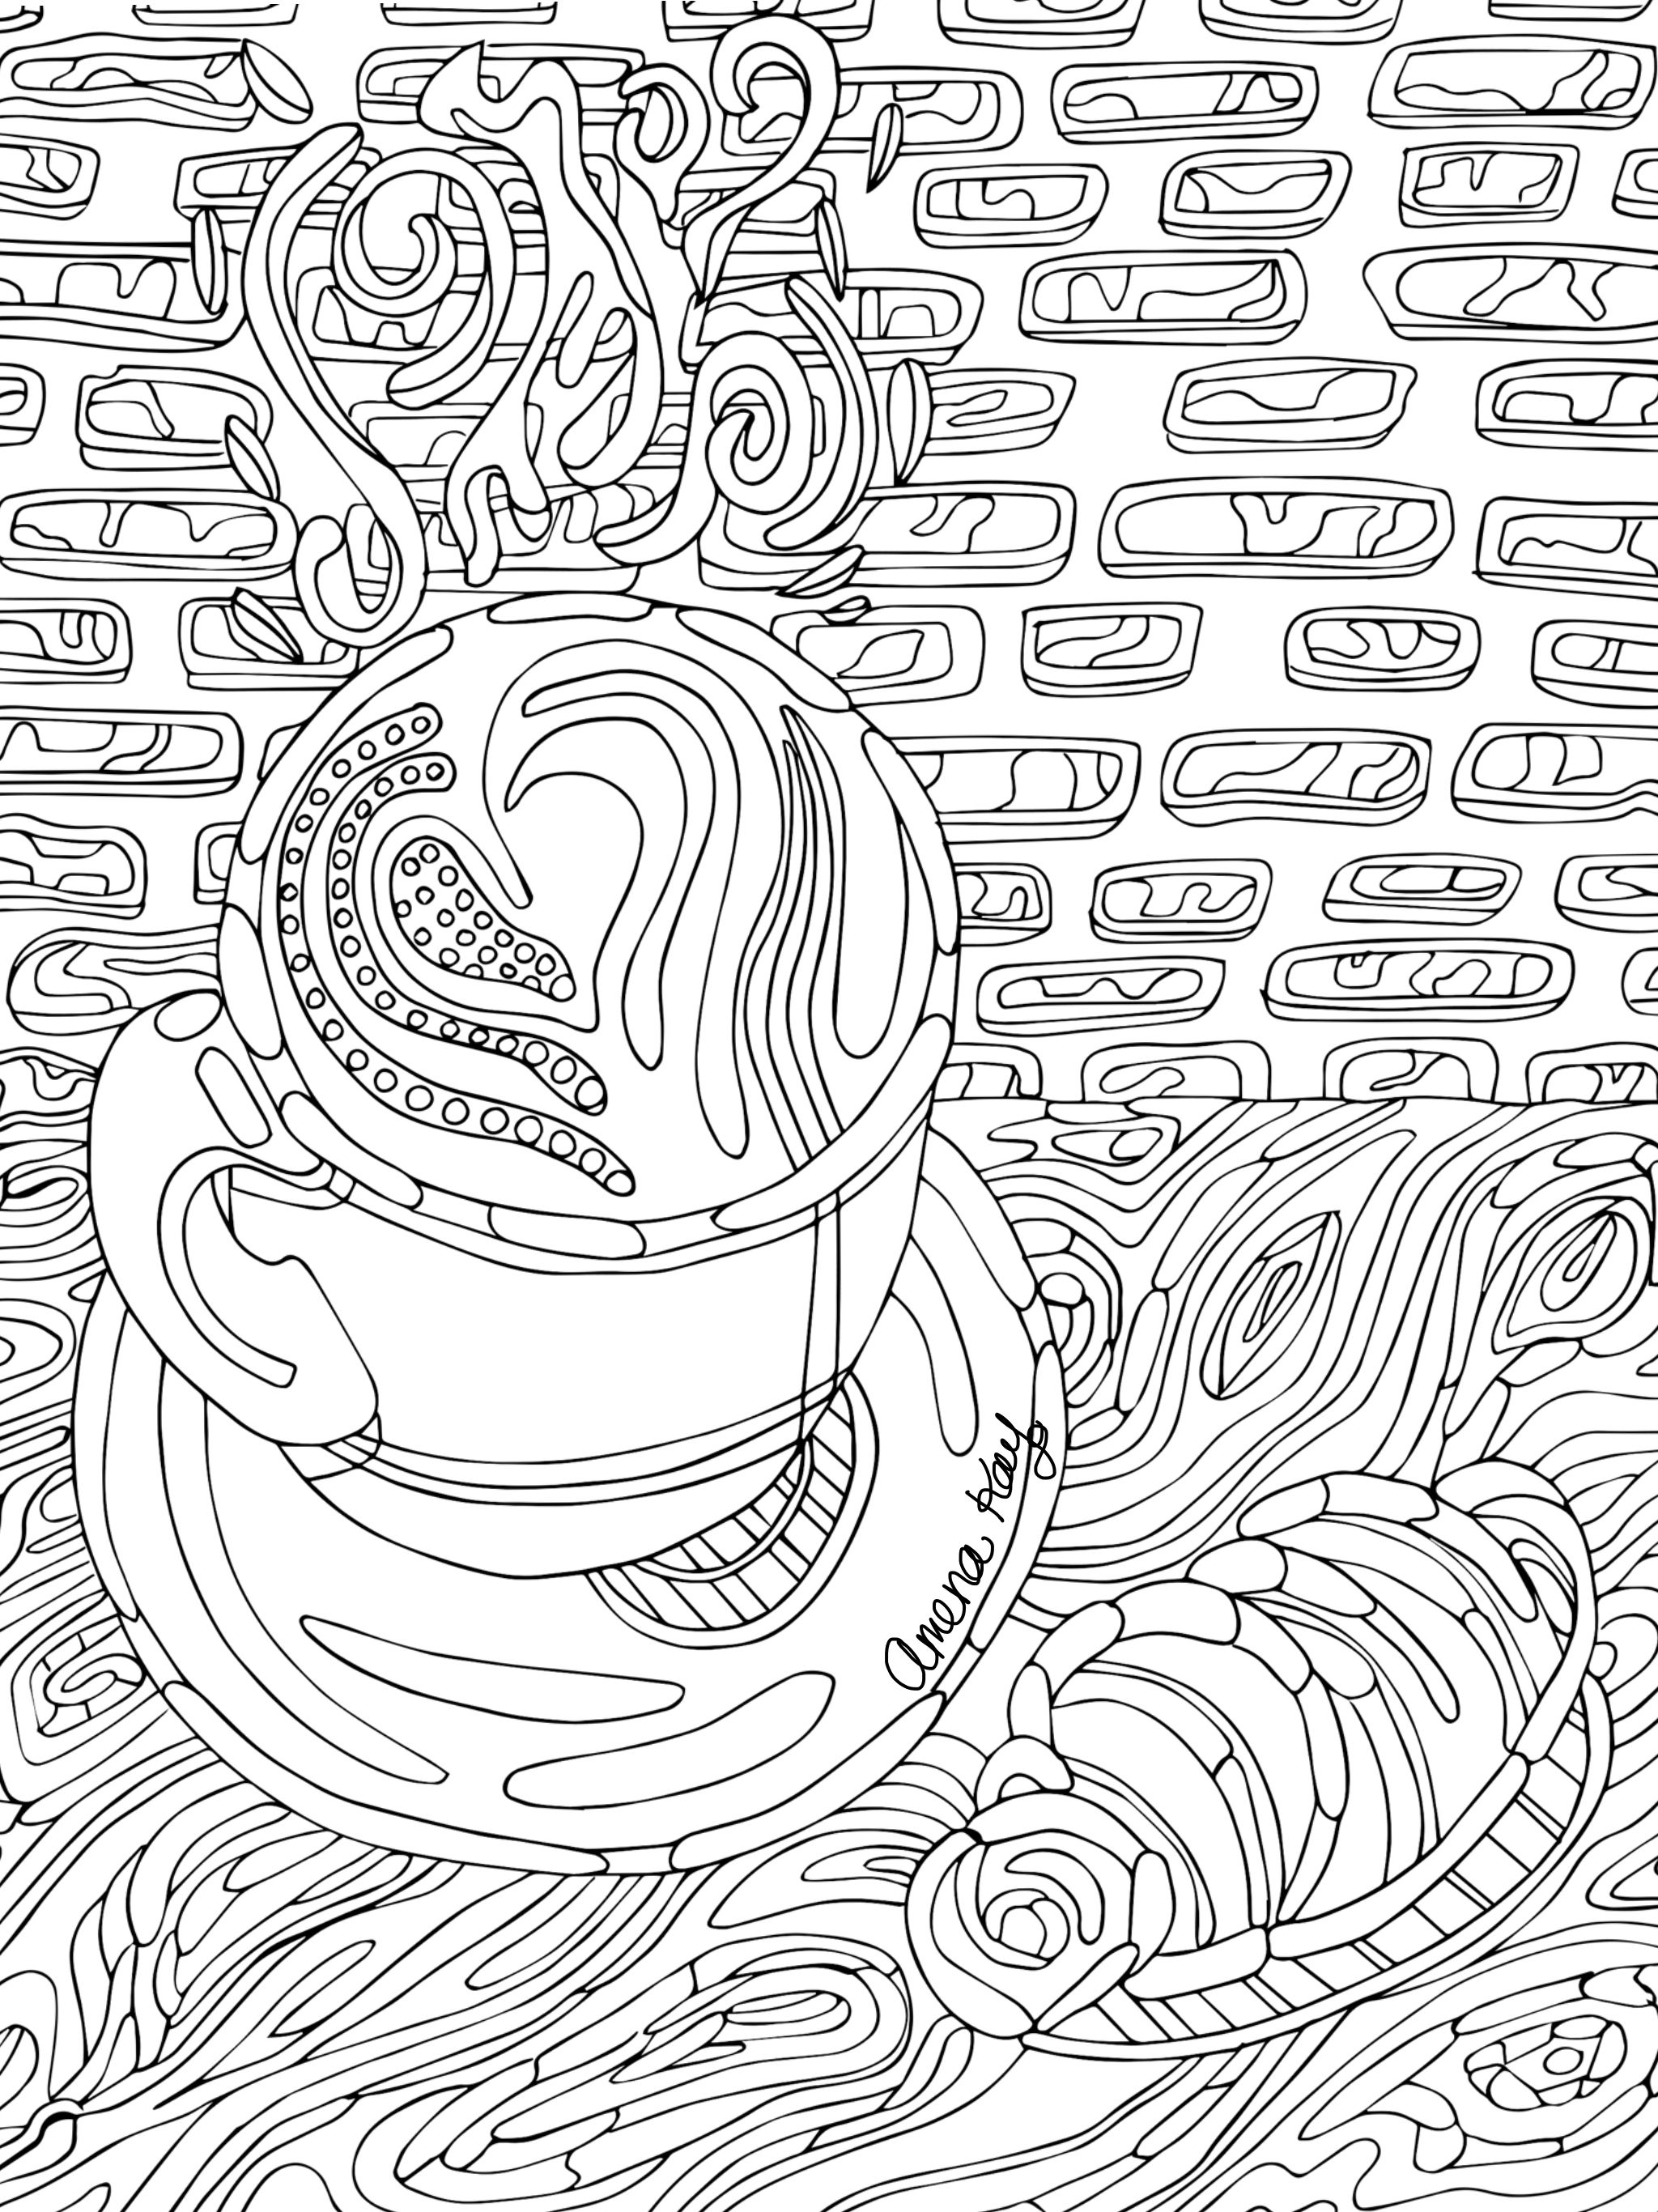 Free Hot Chocolate Coloring Page By Amena Kay Fine Art Follow On